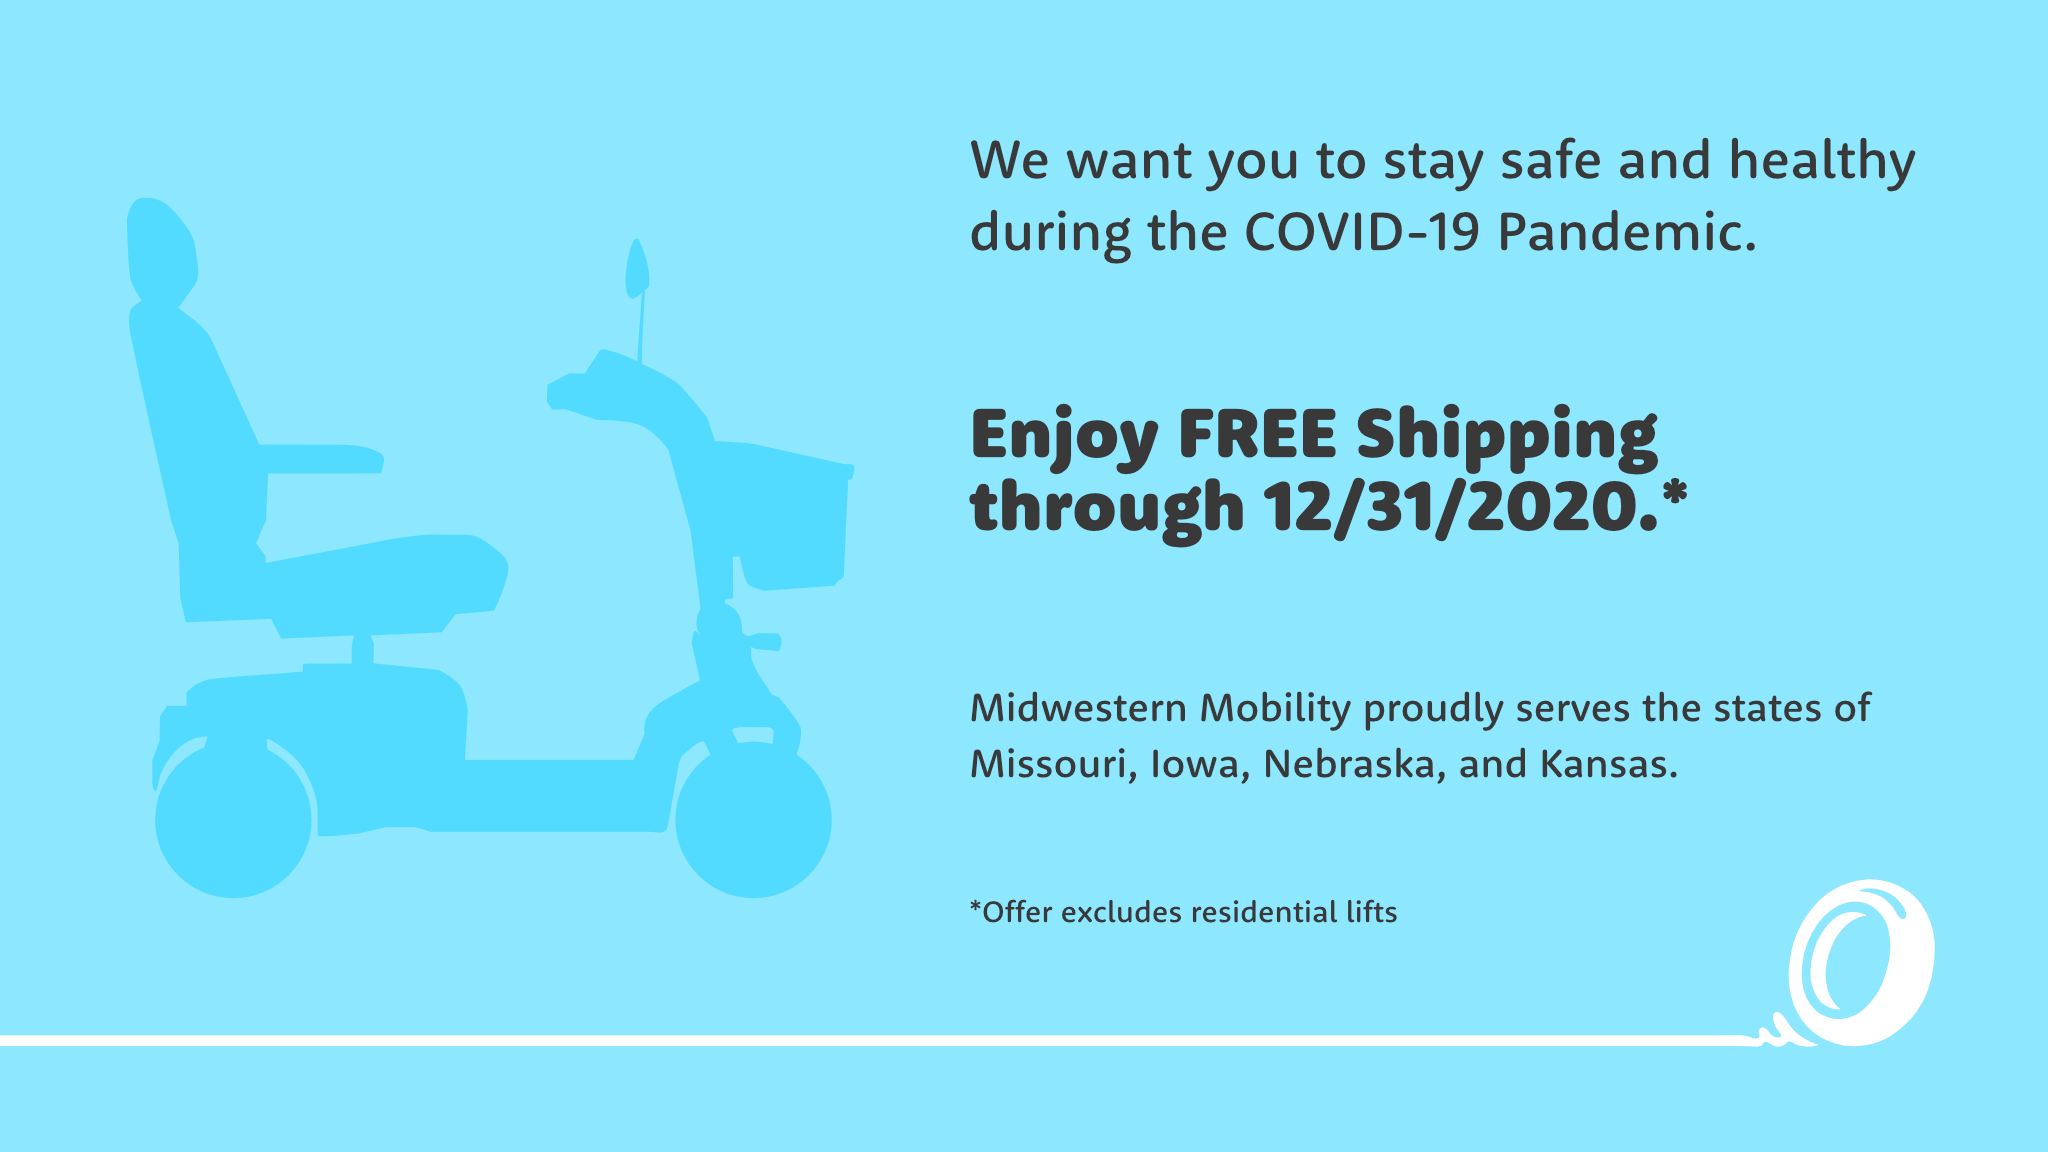 We want you to stay safe and healthy during the COVID-19 Pandemic. Enjoy FREE Shipping through 12/31/2020. Excludes Residential Lifts. Midwestern Mobility proudly serves the states of Missouri, Iowa, Nebraska, and Kansas.